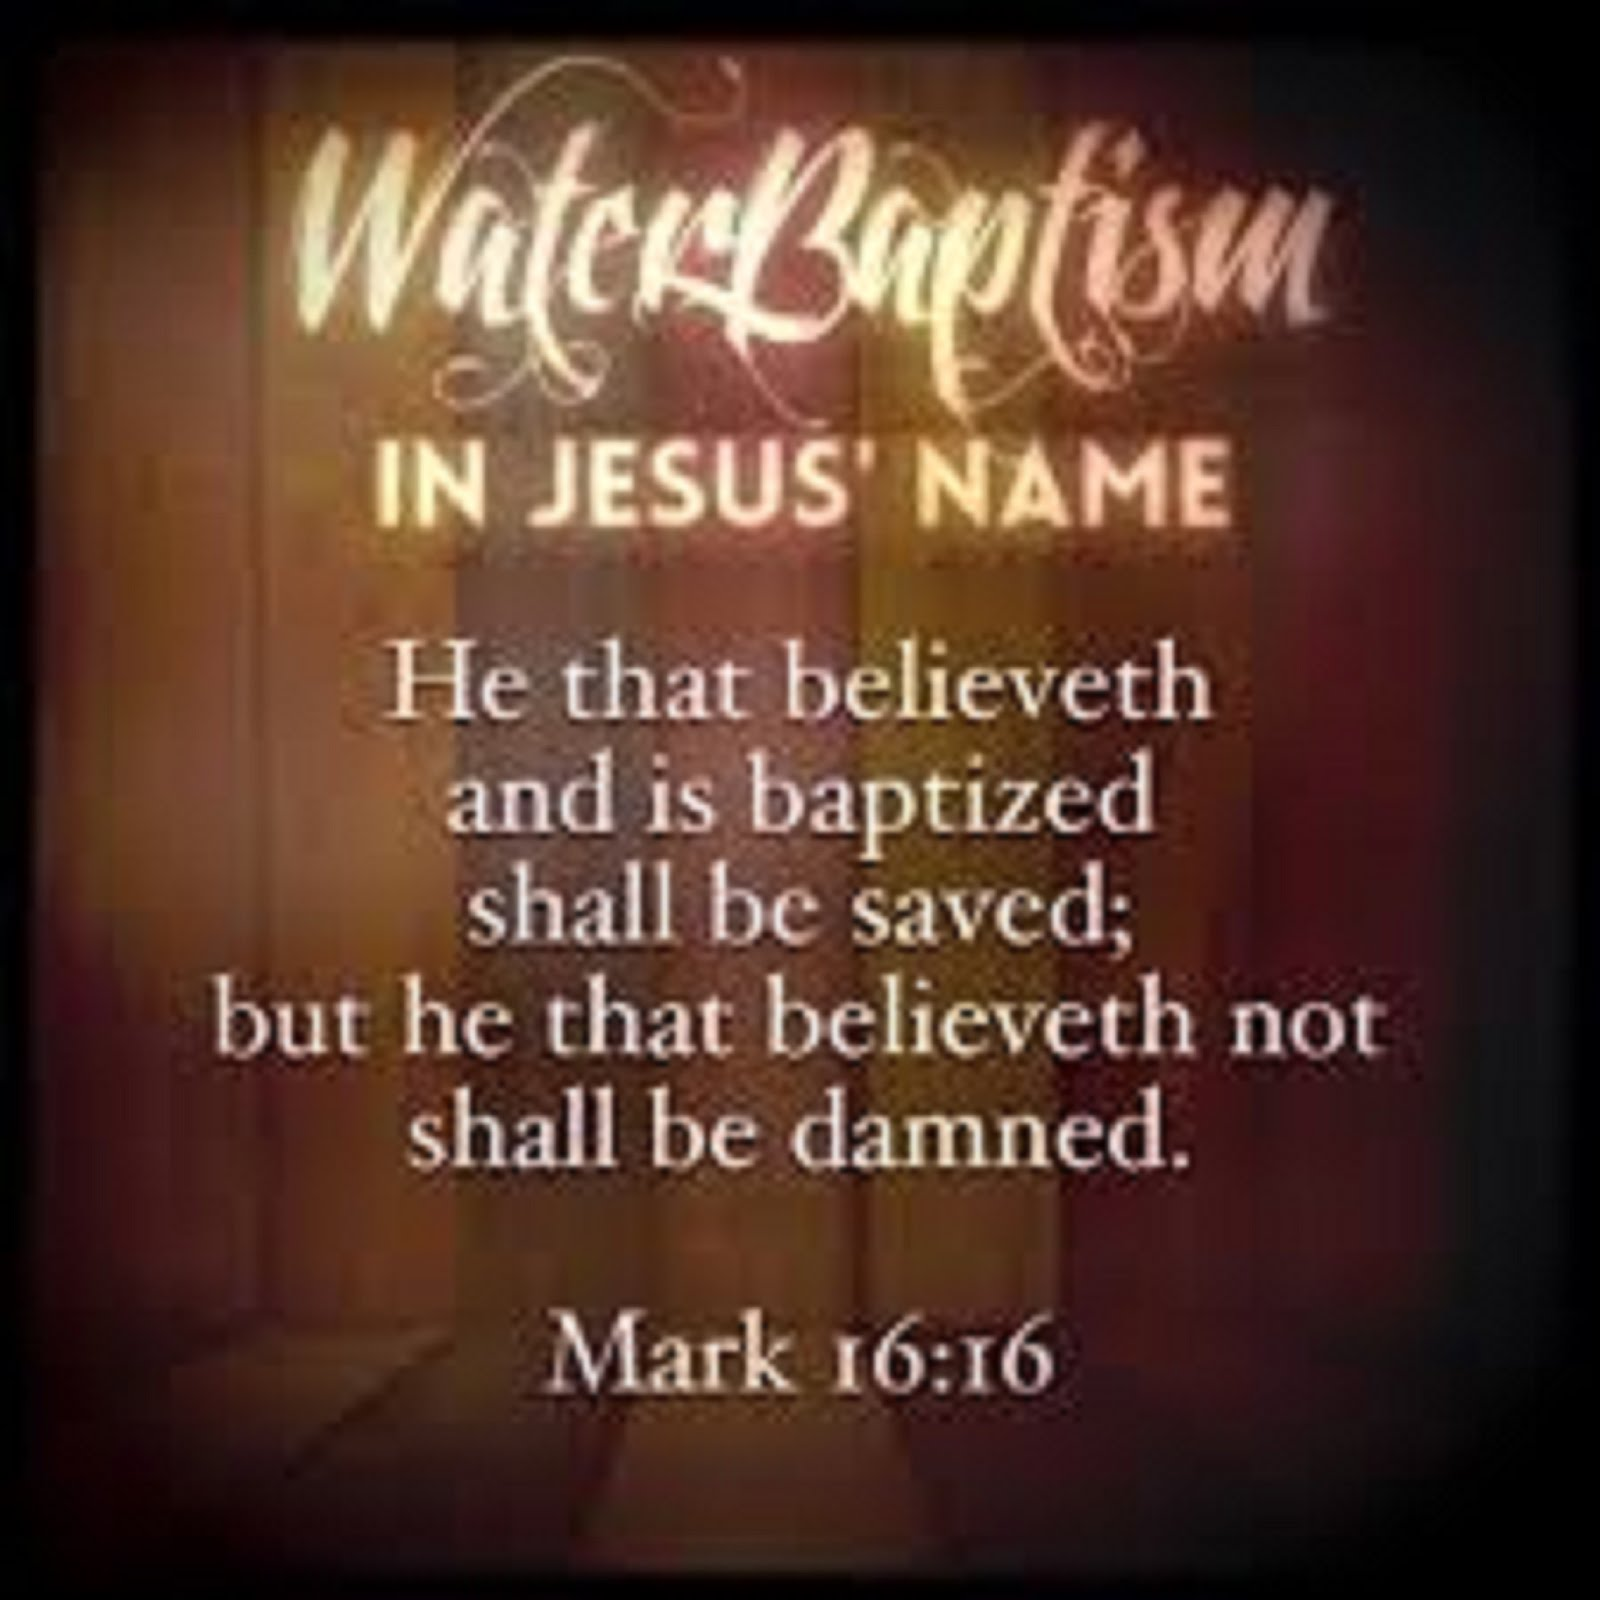 WATER BAPTISM - MARK 1616 - HE THAT BELIEVETH AND IS BAPTISED SHALL BE SAVED, BUT HE